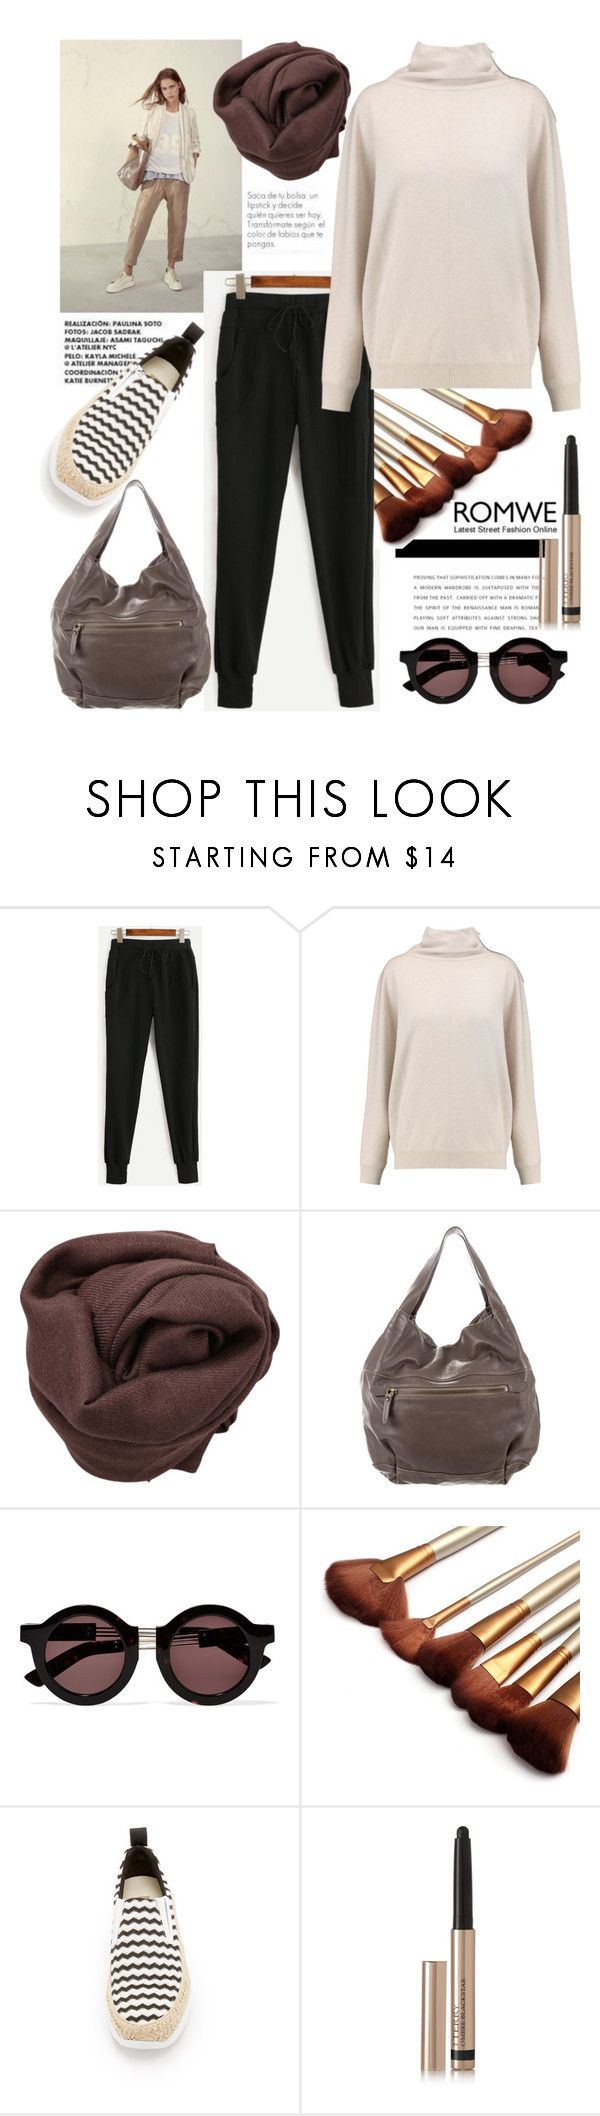 """""""Win Black Drawstring Waist Pants!"""" by grinevagh ❤ liked on Polyvore featuring Brunello Cucinelli, House of Holland, MSGM and By Terry"""